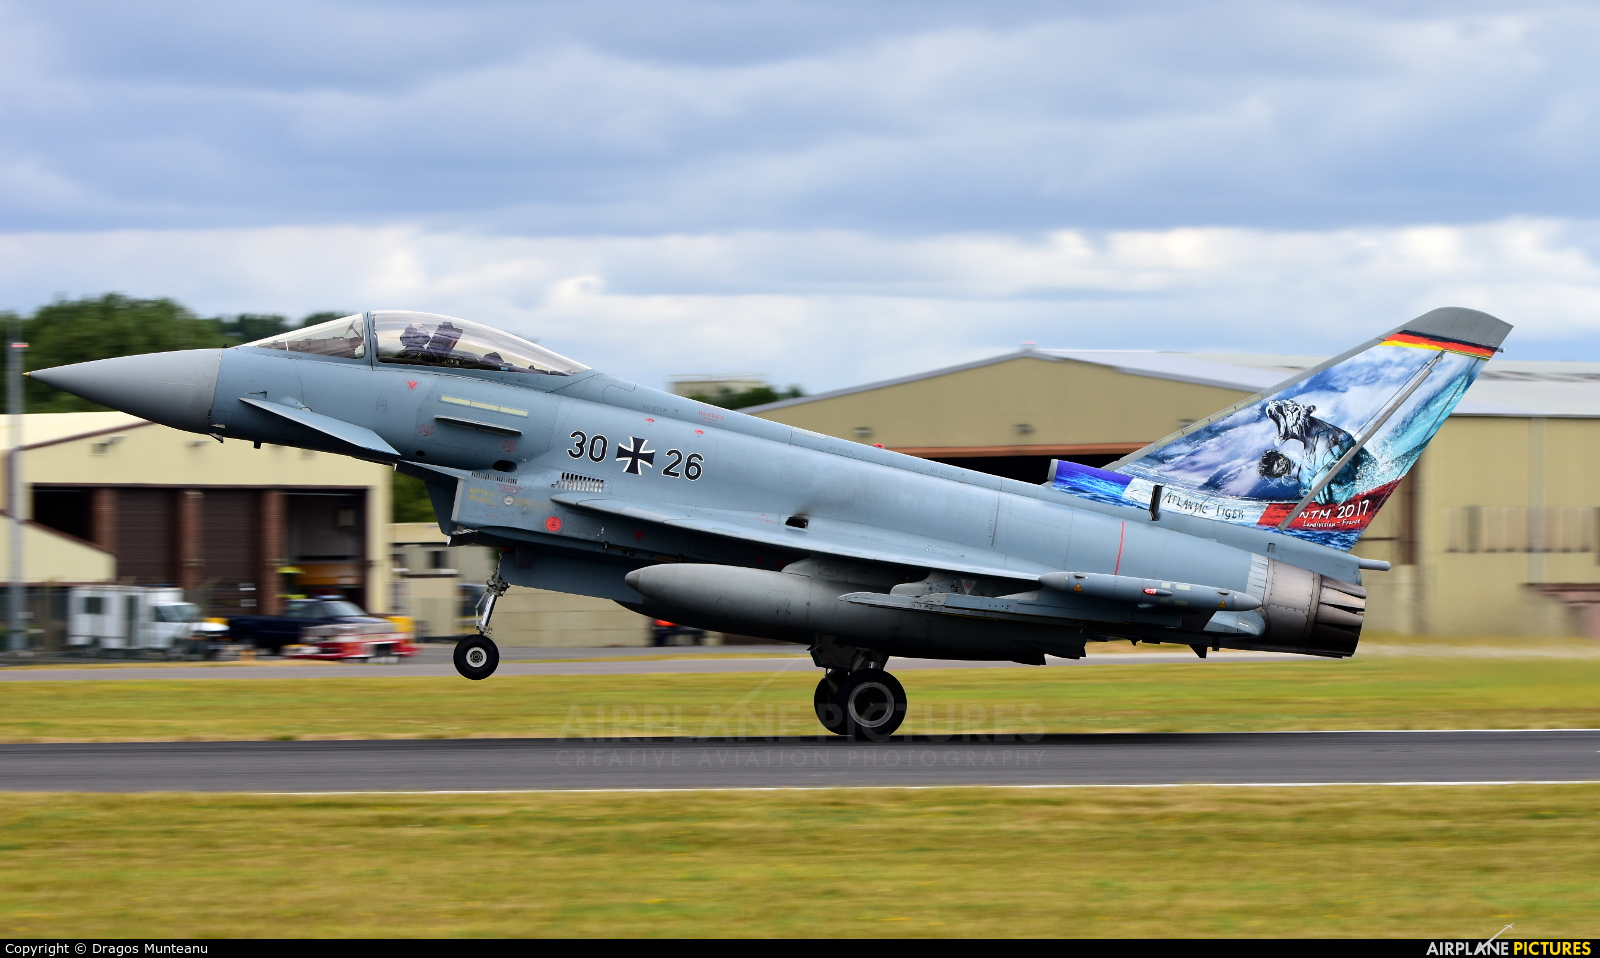 Germany - Air Force 30 26 aircraft at Fairford